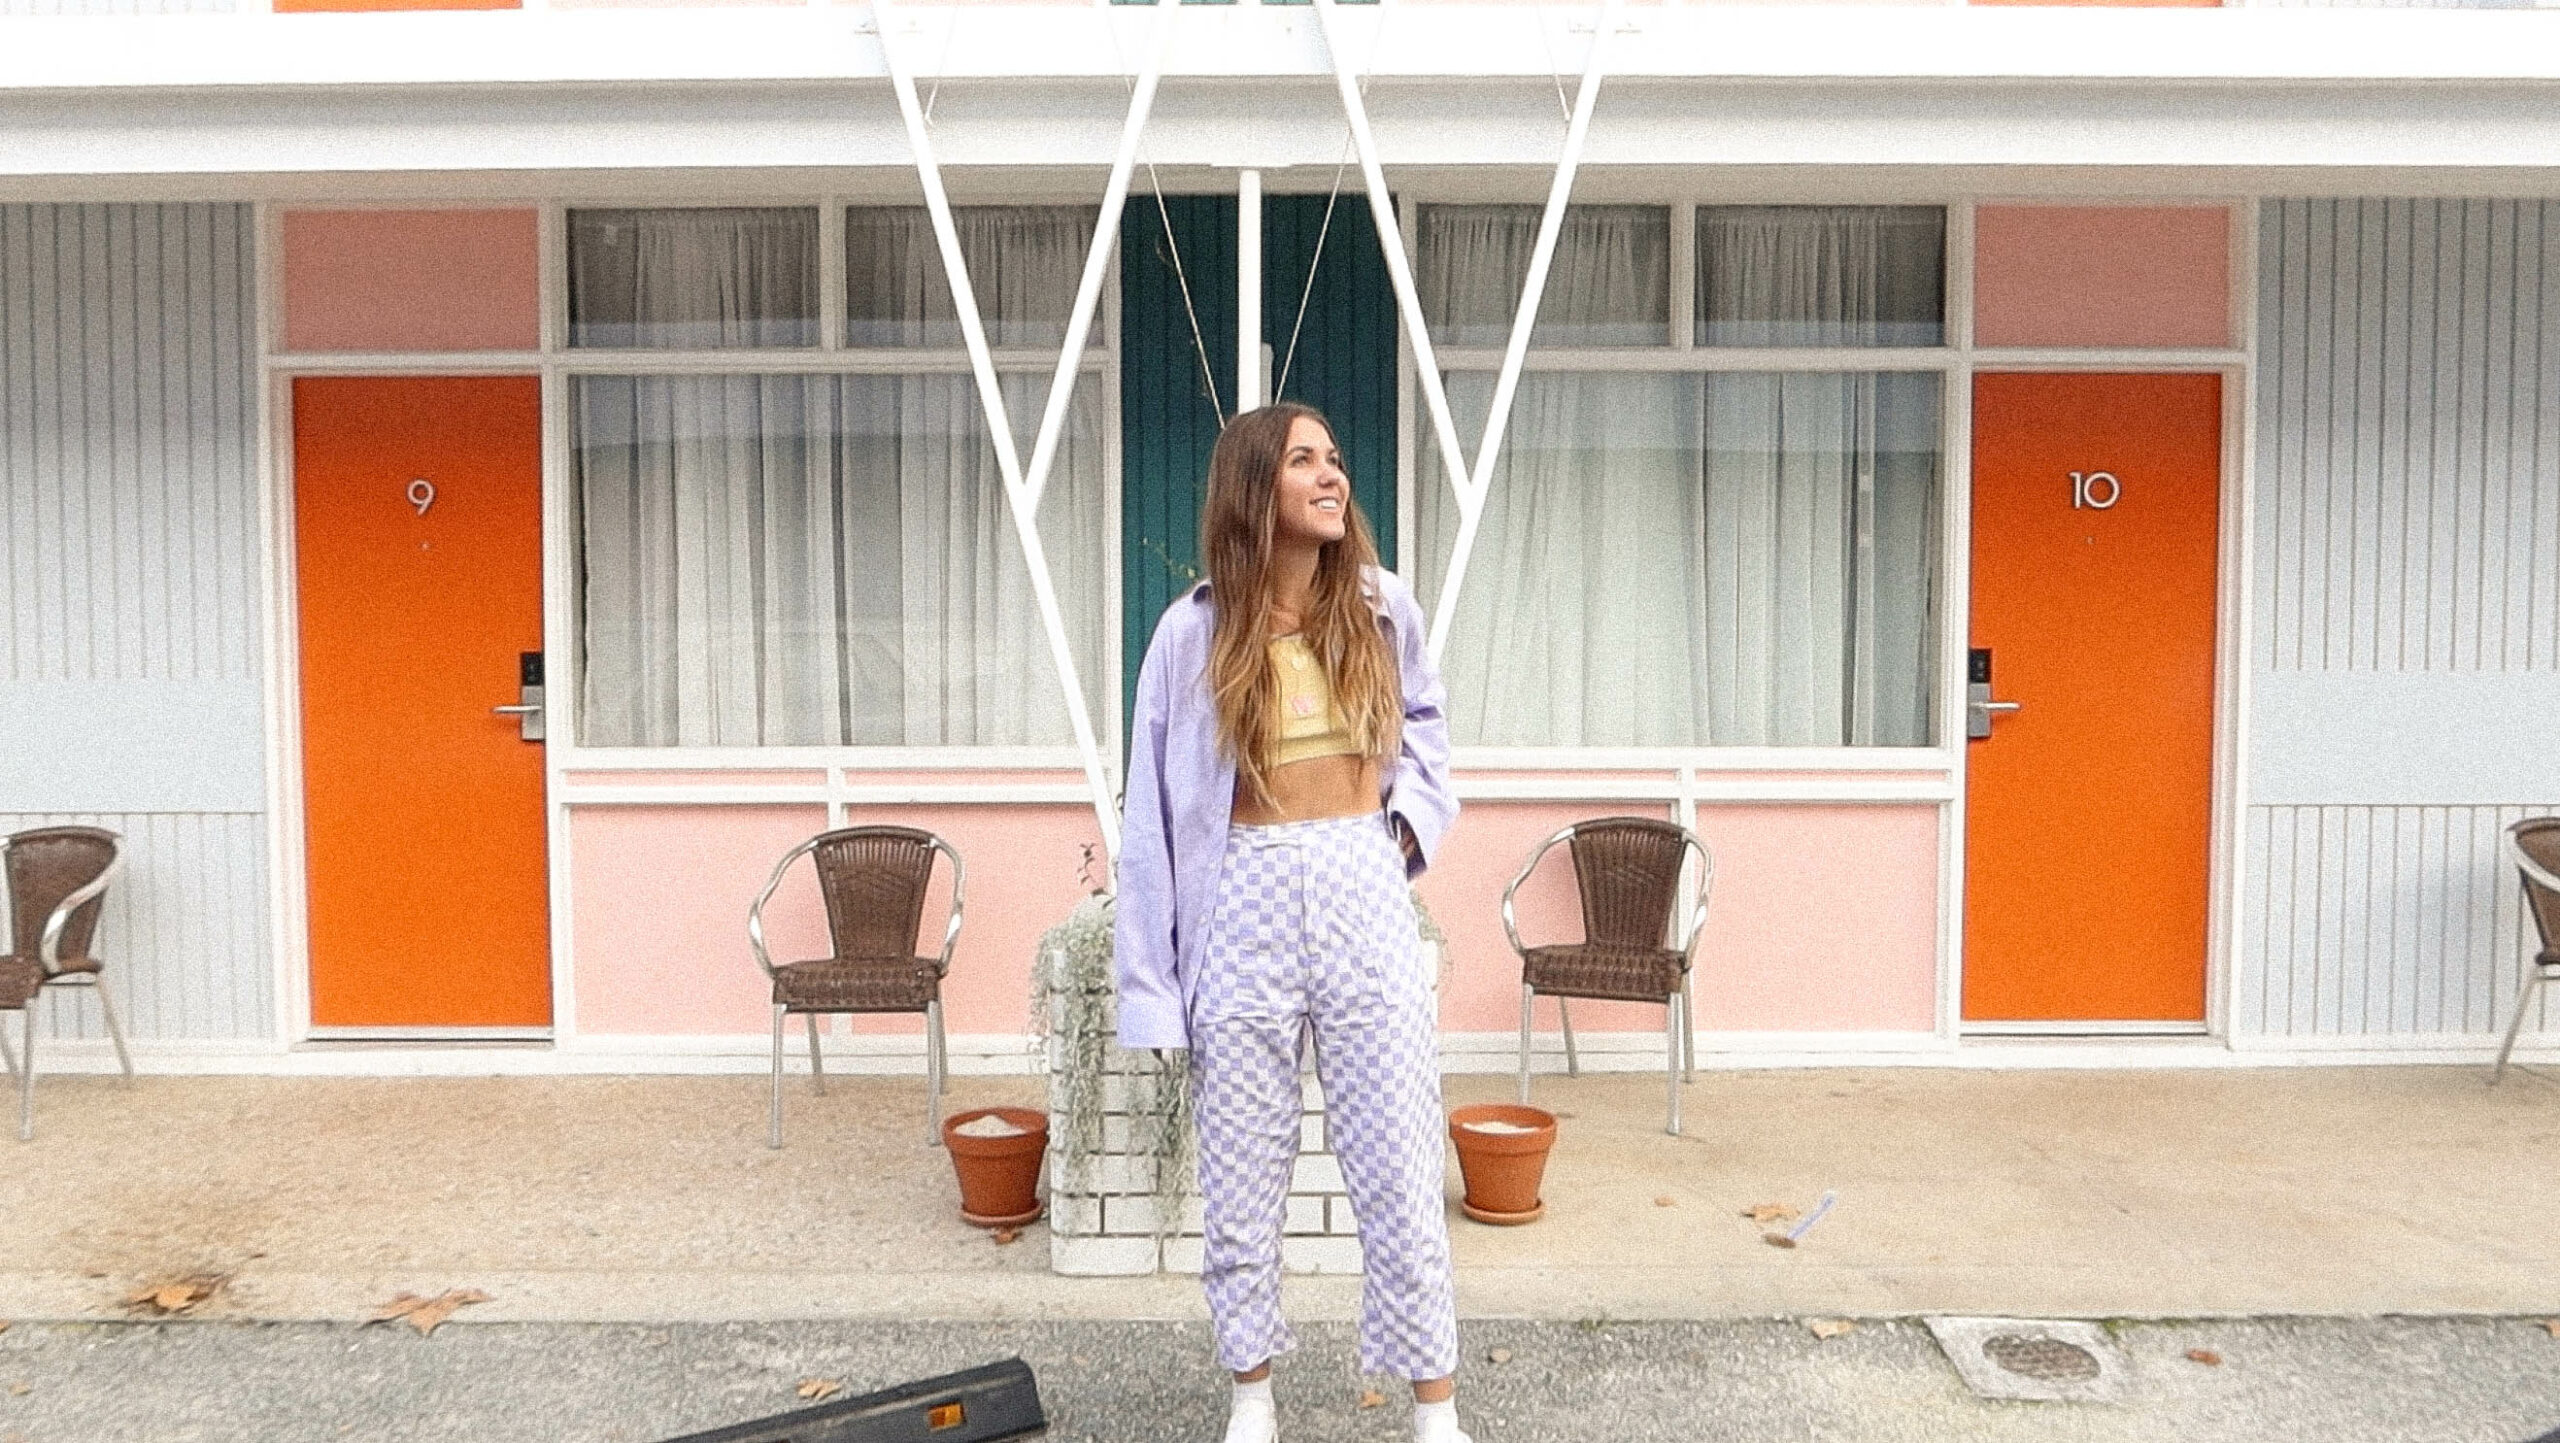 Maddy wears purple and white checkered pants in front of a retro building